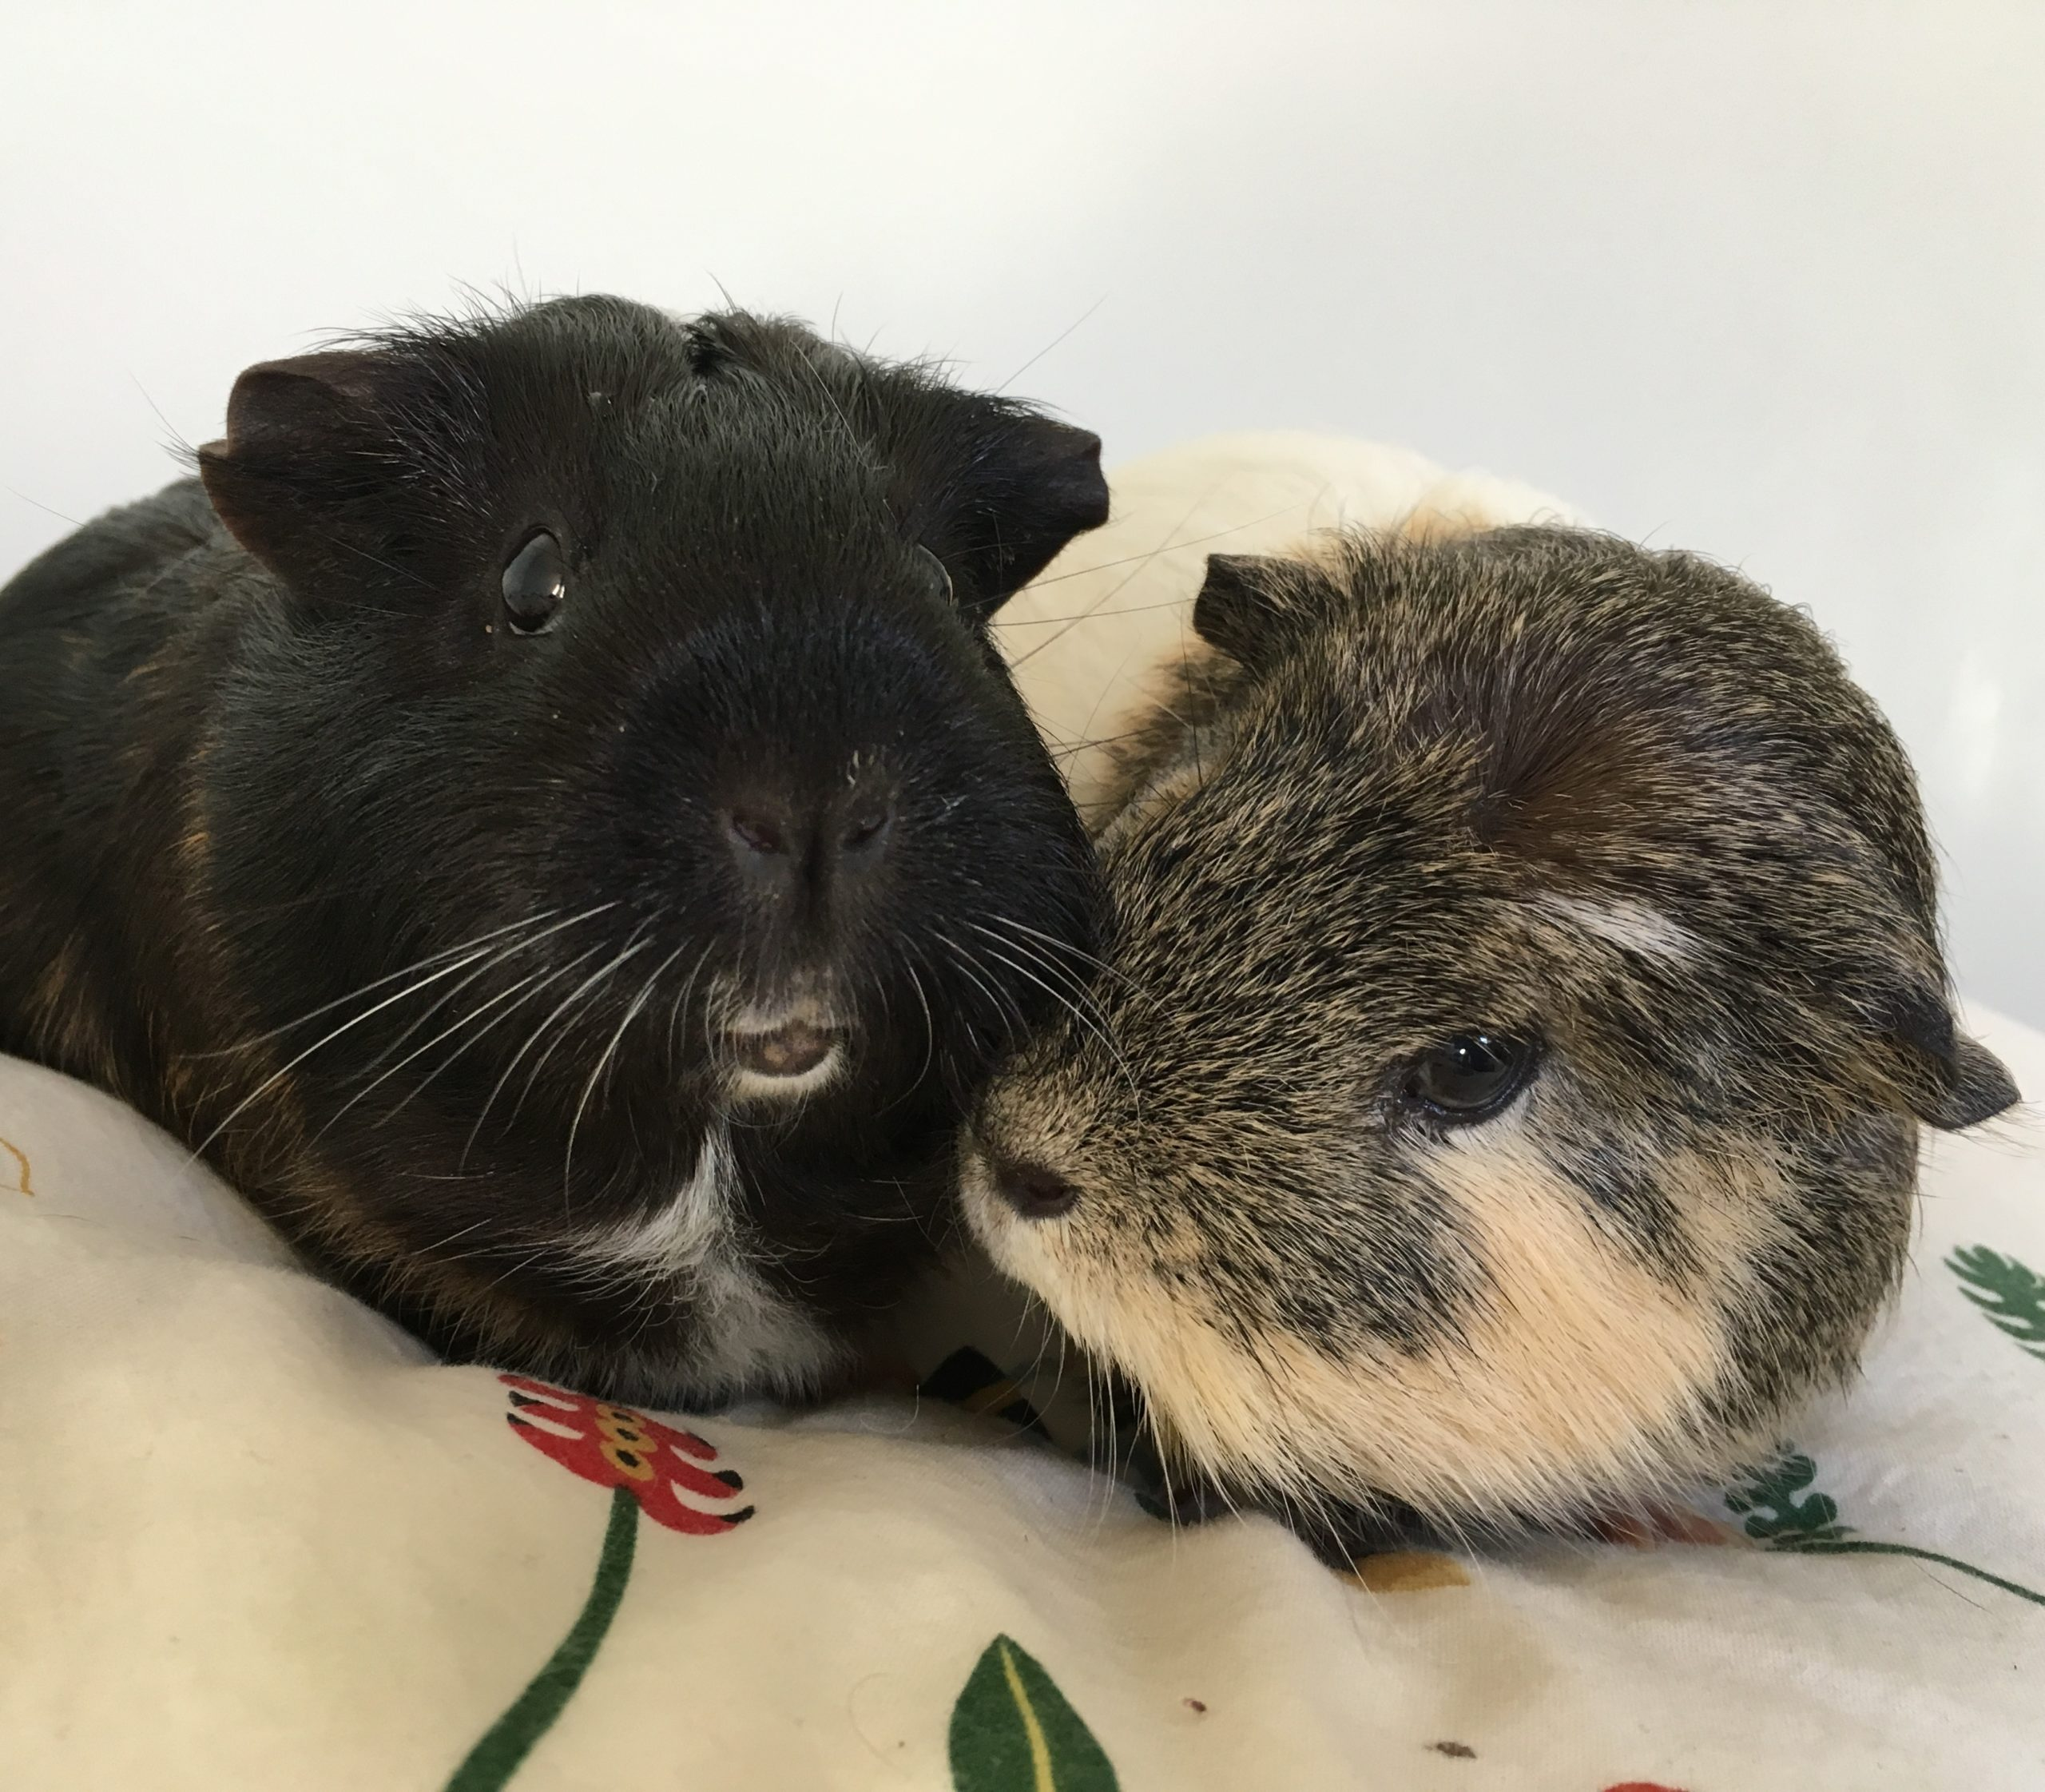 Upper Respiratory Infections In Guinea Pigs